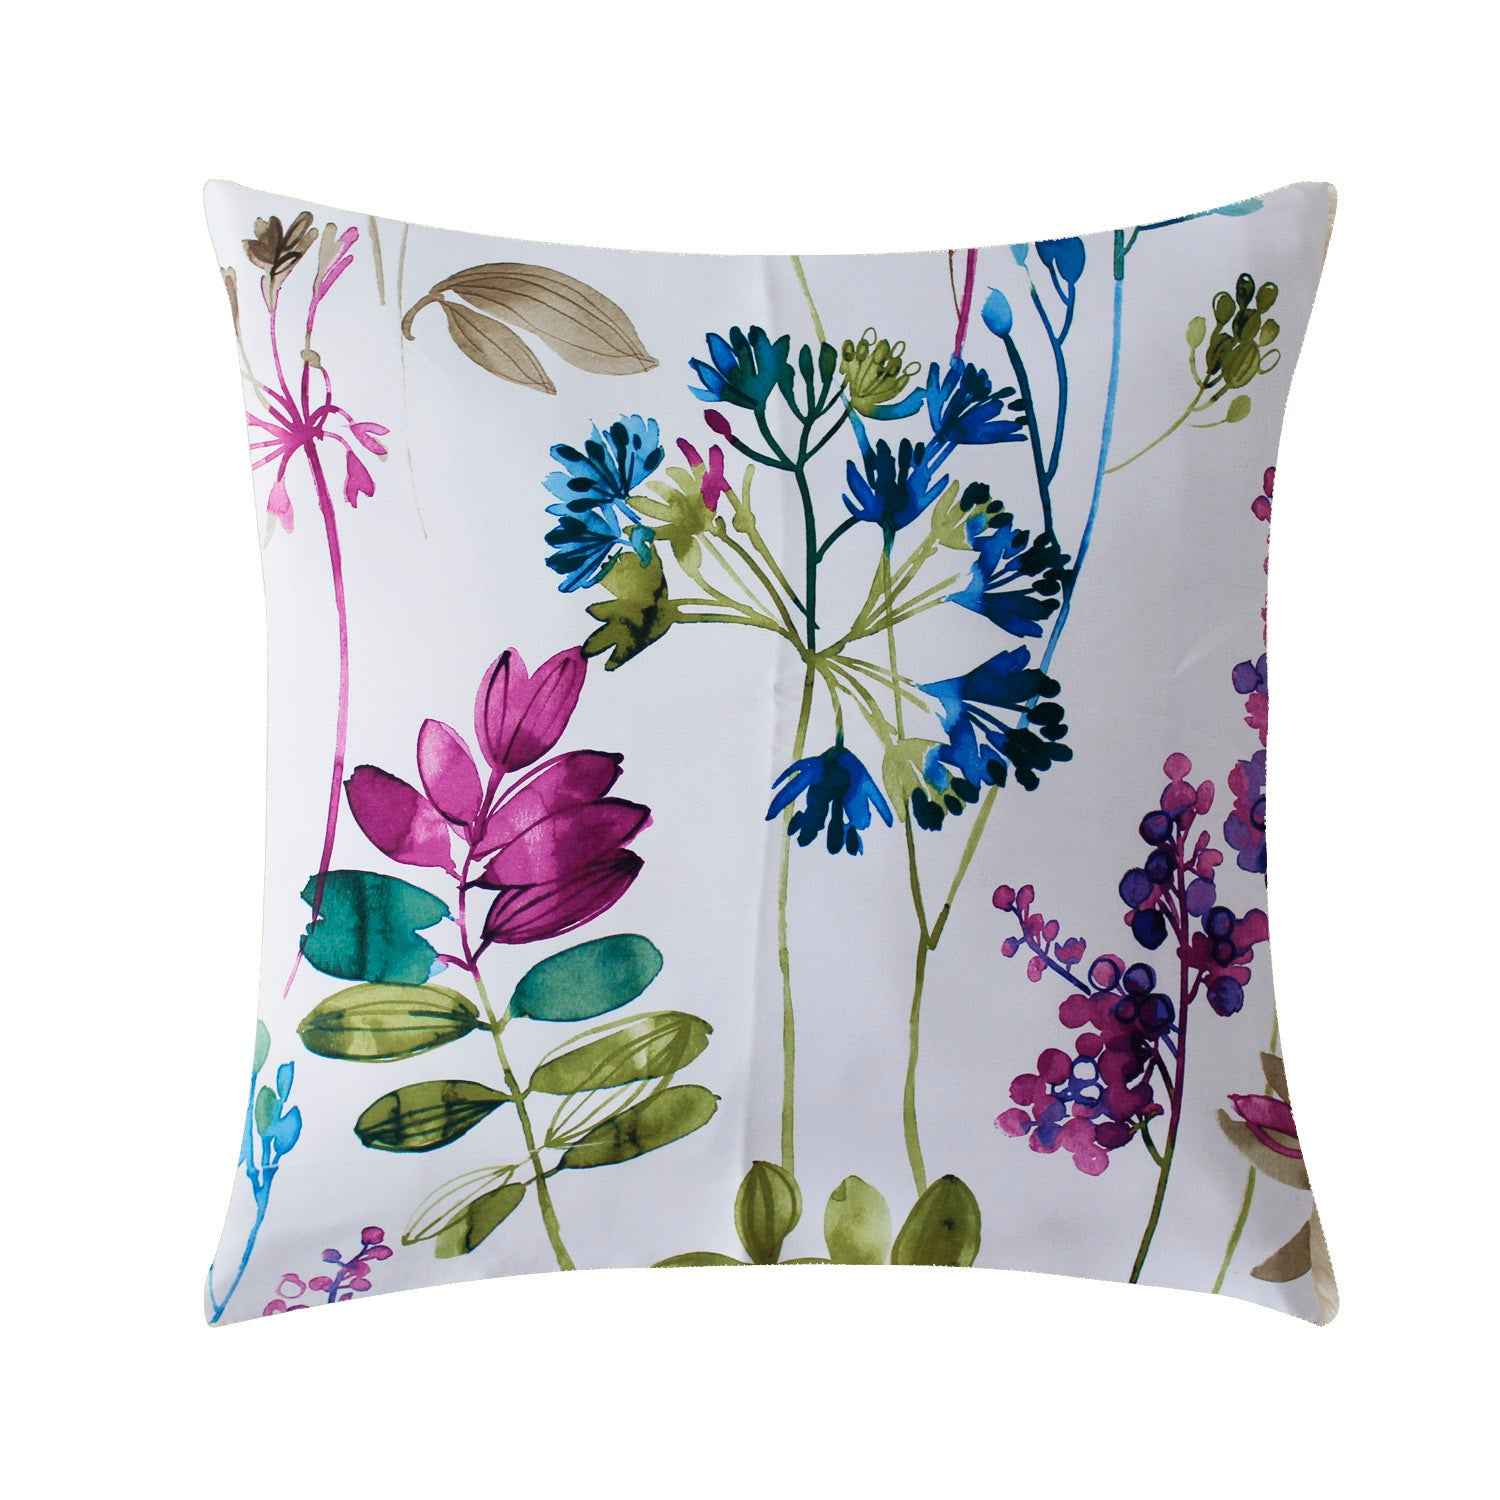 Aandy Top Purple Blue Flower Pillow Cover Cases 1 set of 2 Pillow Cases - Anady Top Space Design